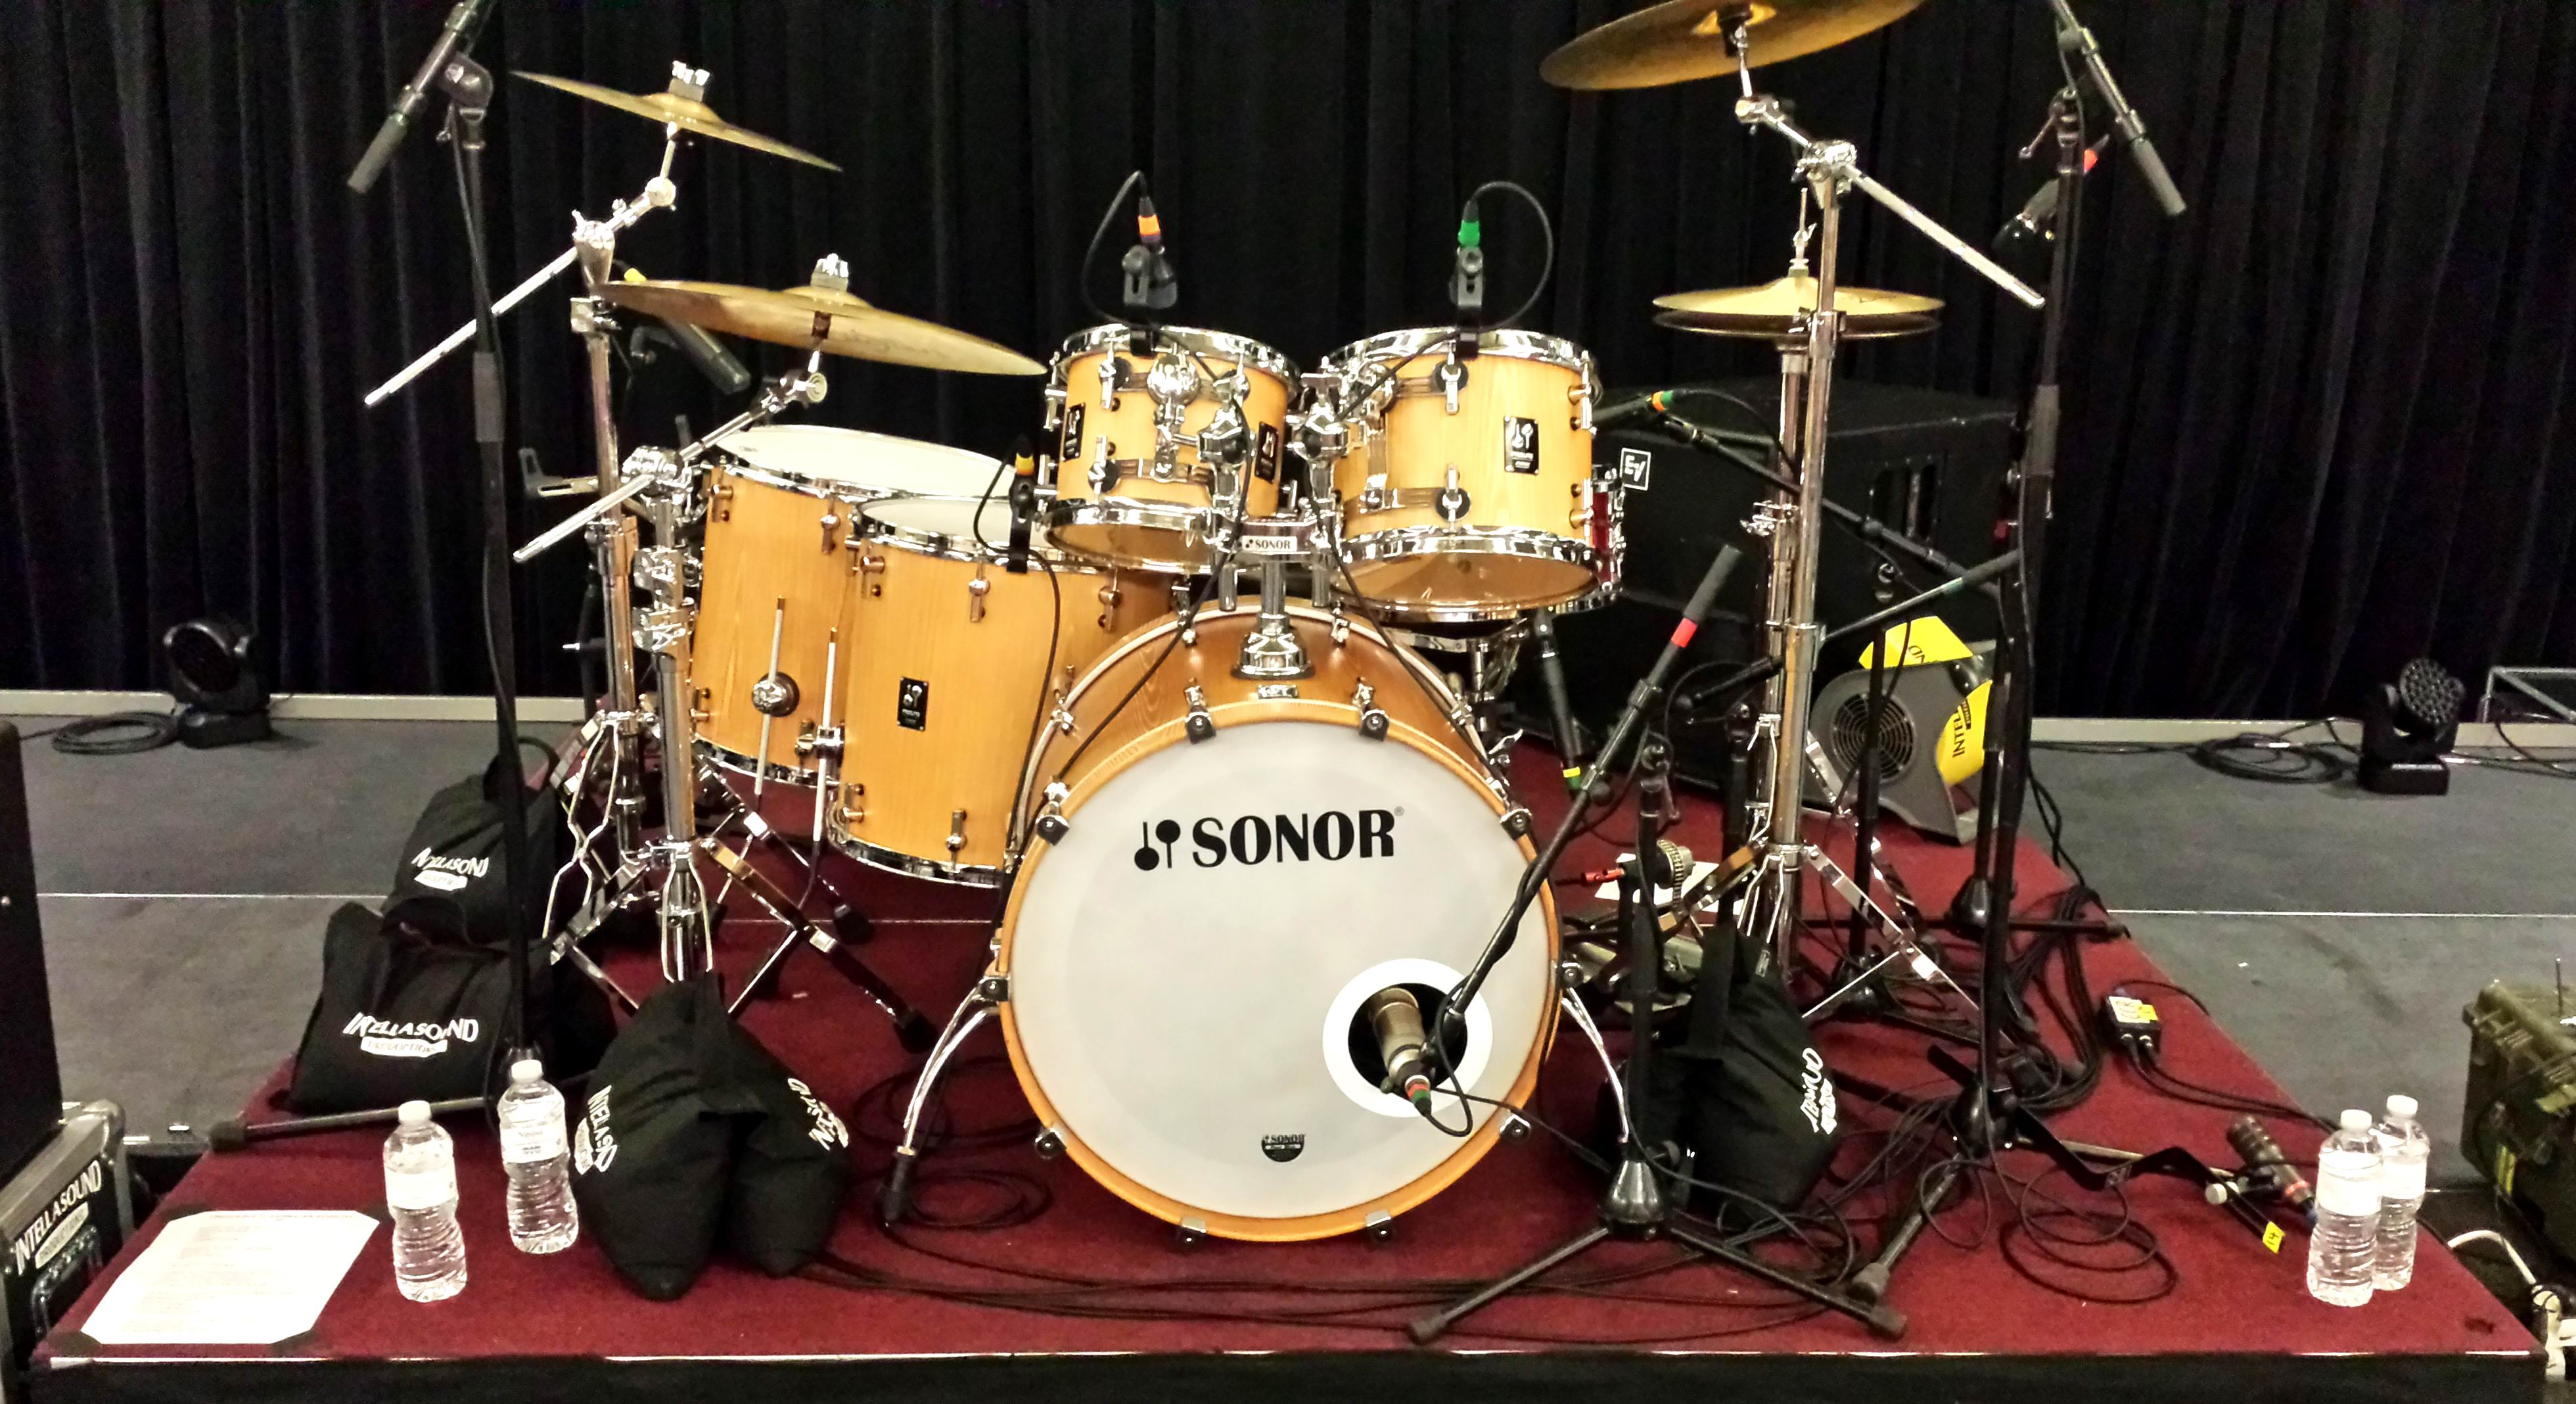 Intellasound / Sonor ProLite Drum Kits